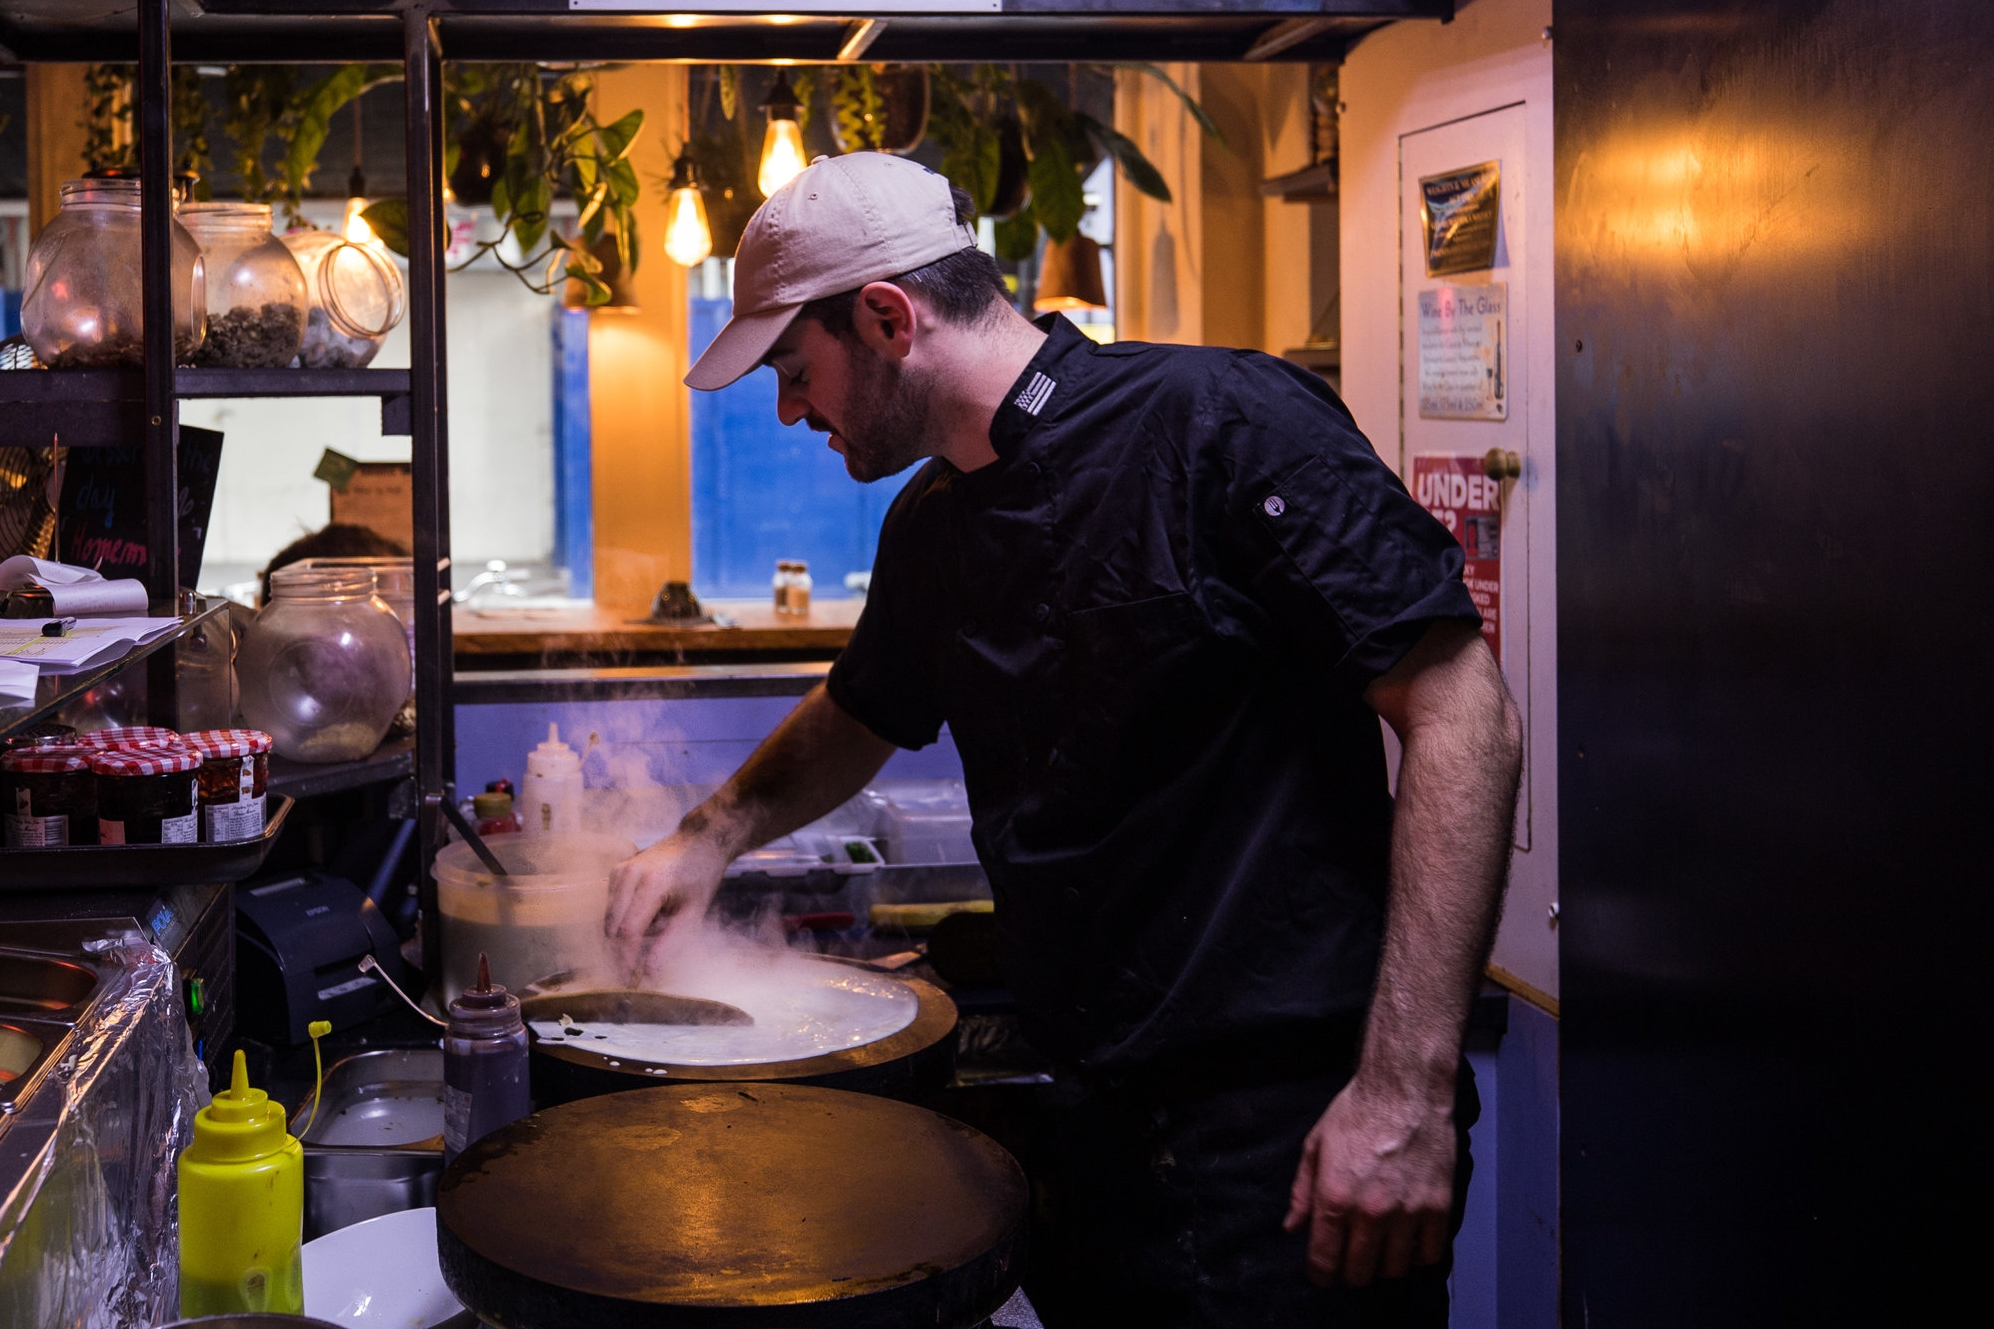 Allan head chef creperie mamies london